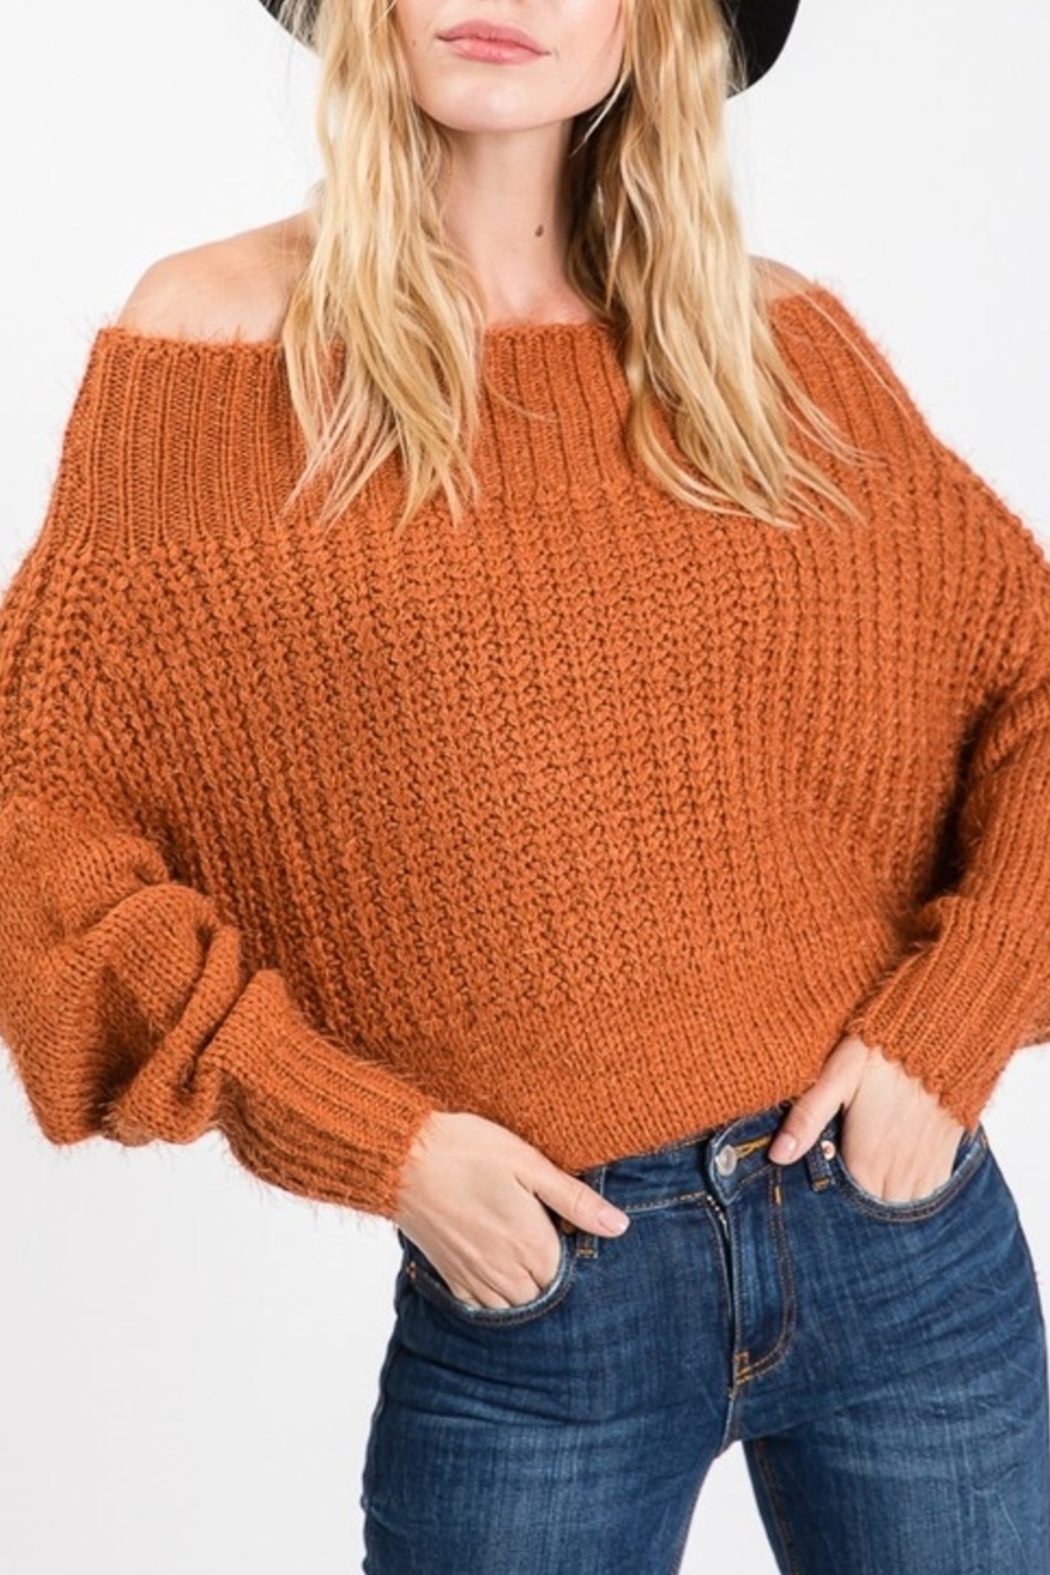 Kayla Armoire Seasonal Sass Sweater - Front Cropped Image